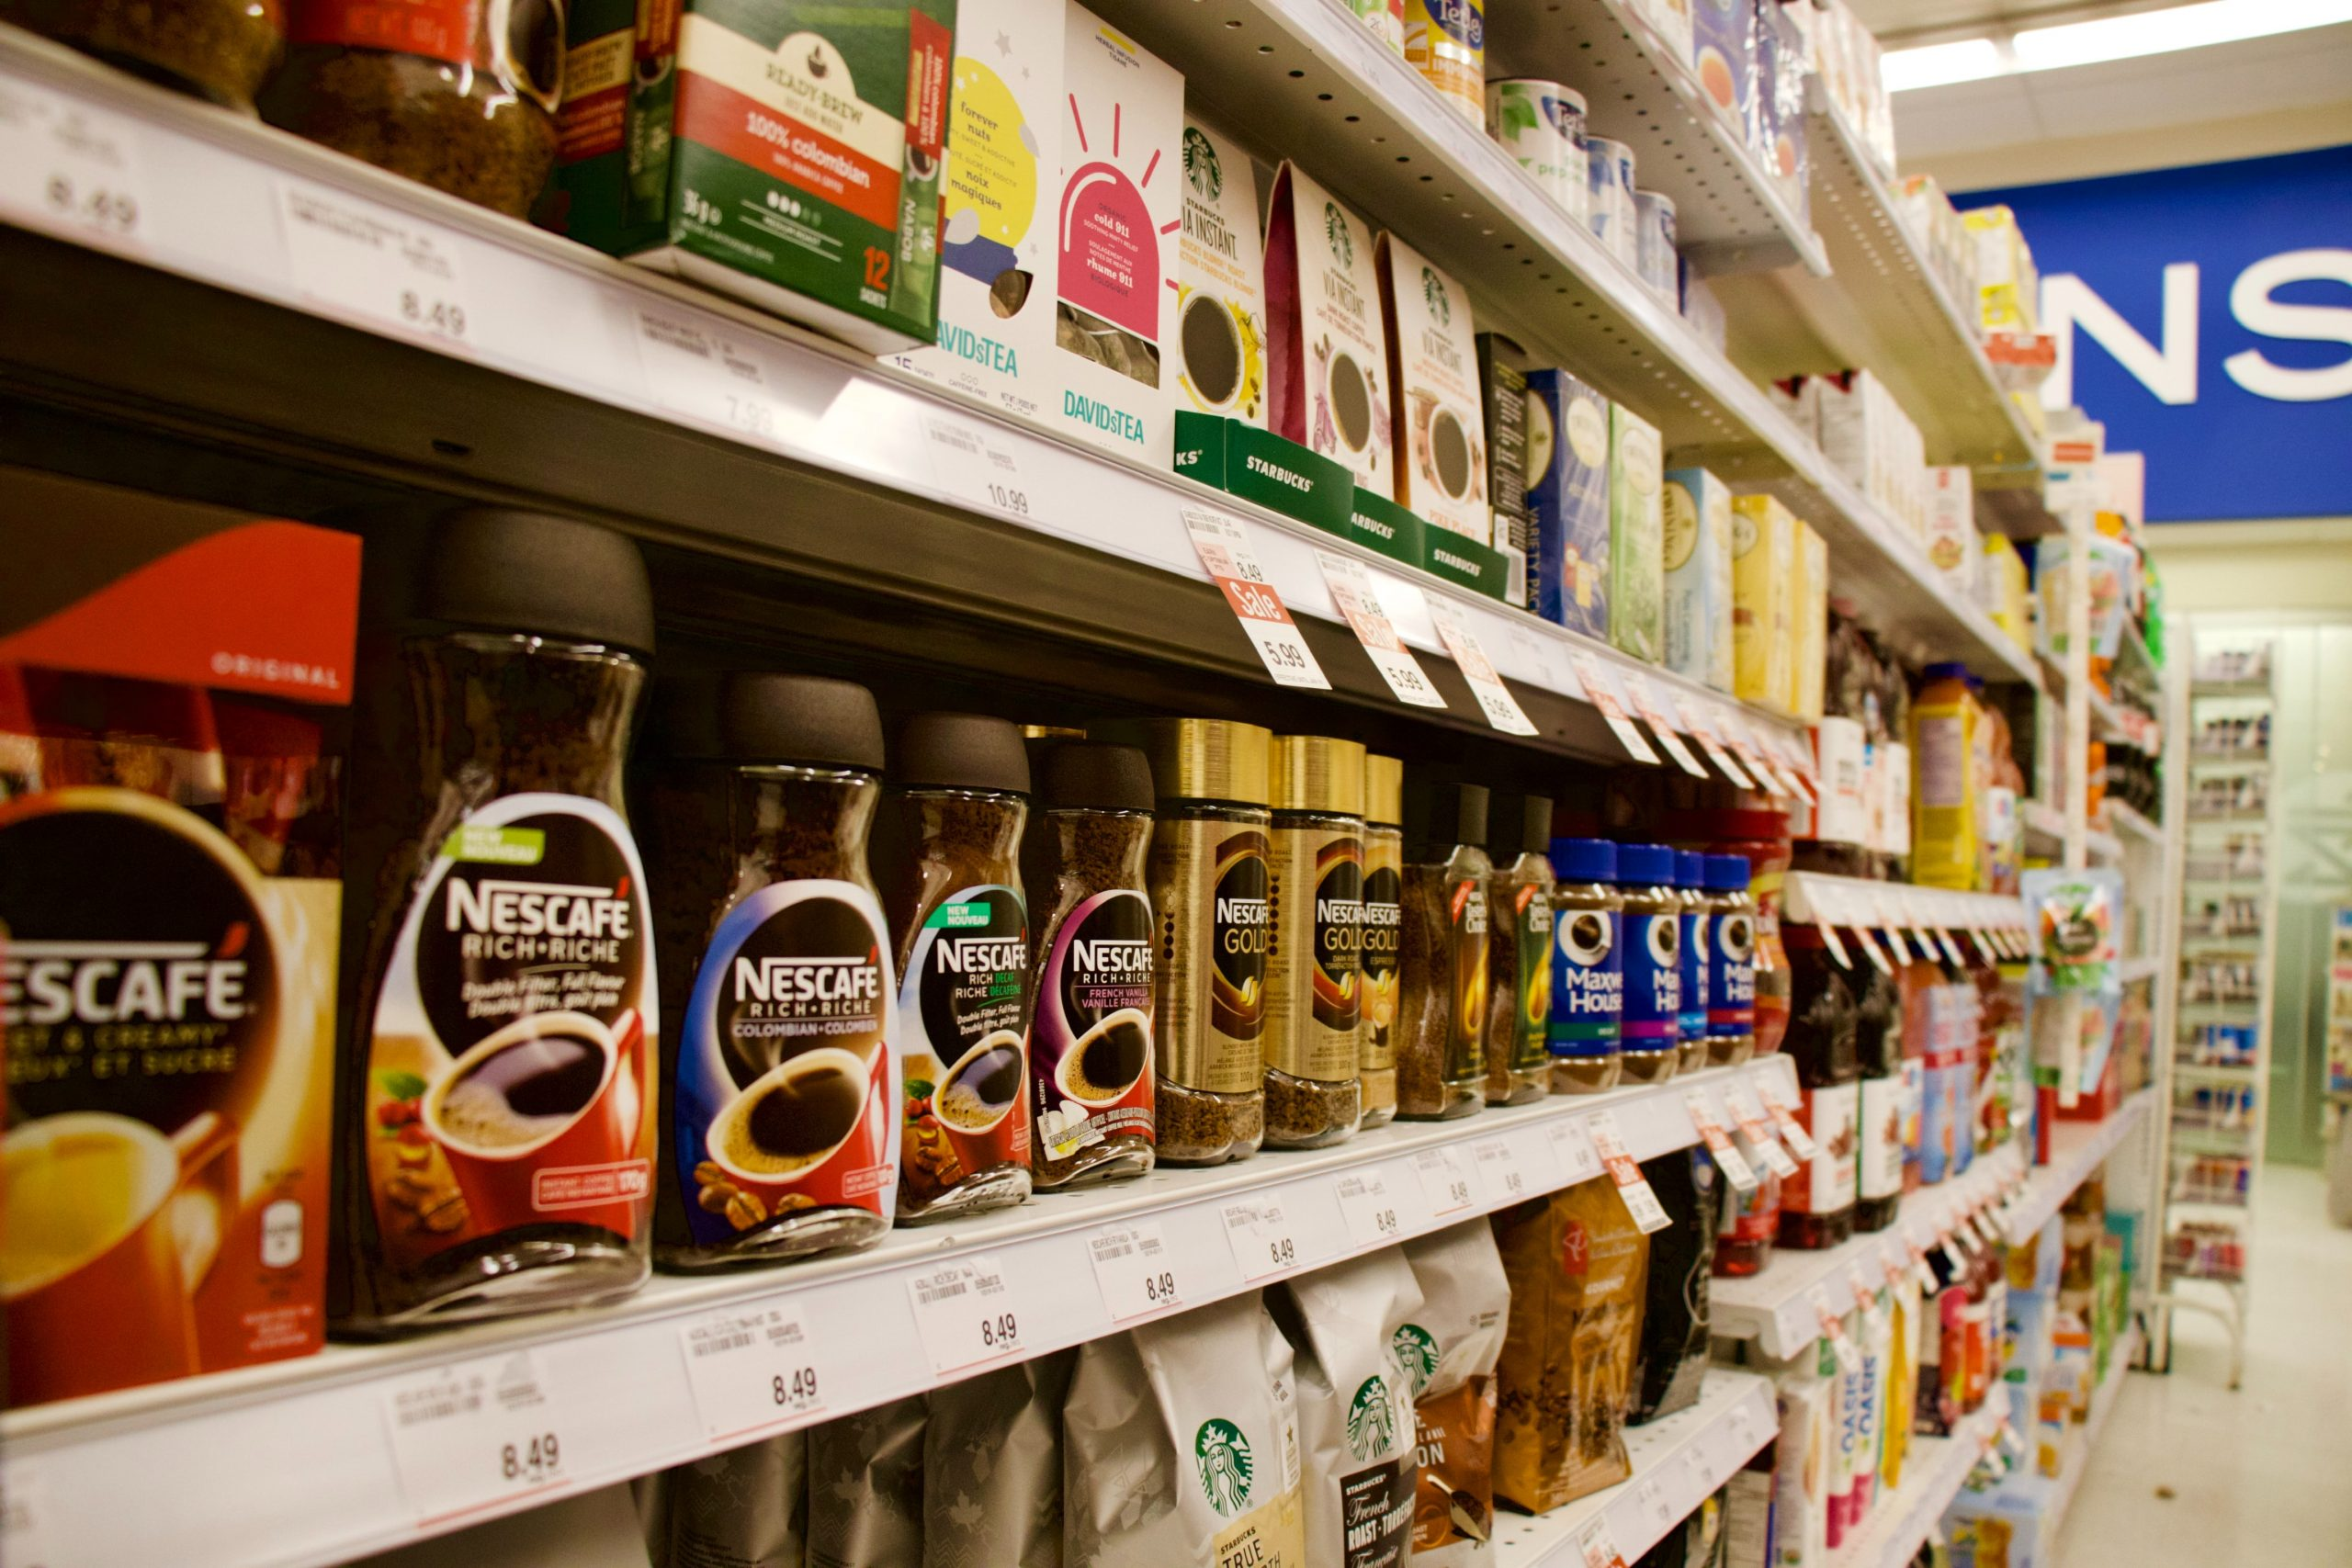 Supermarket shelves filled with products.